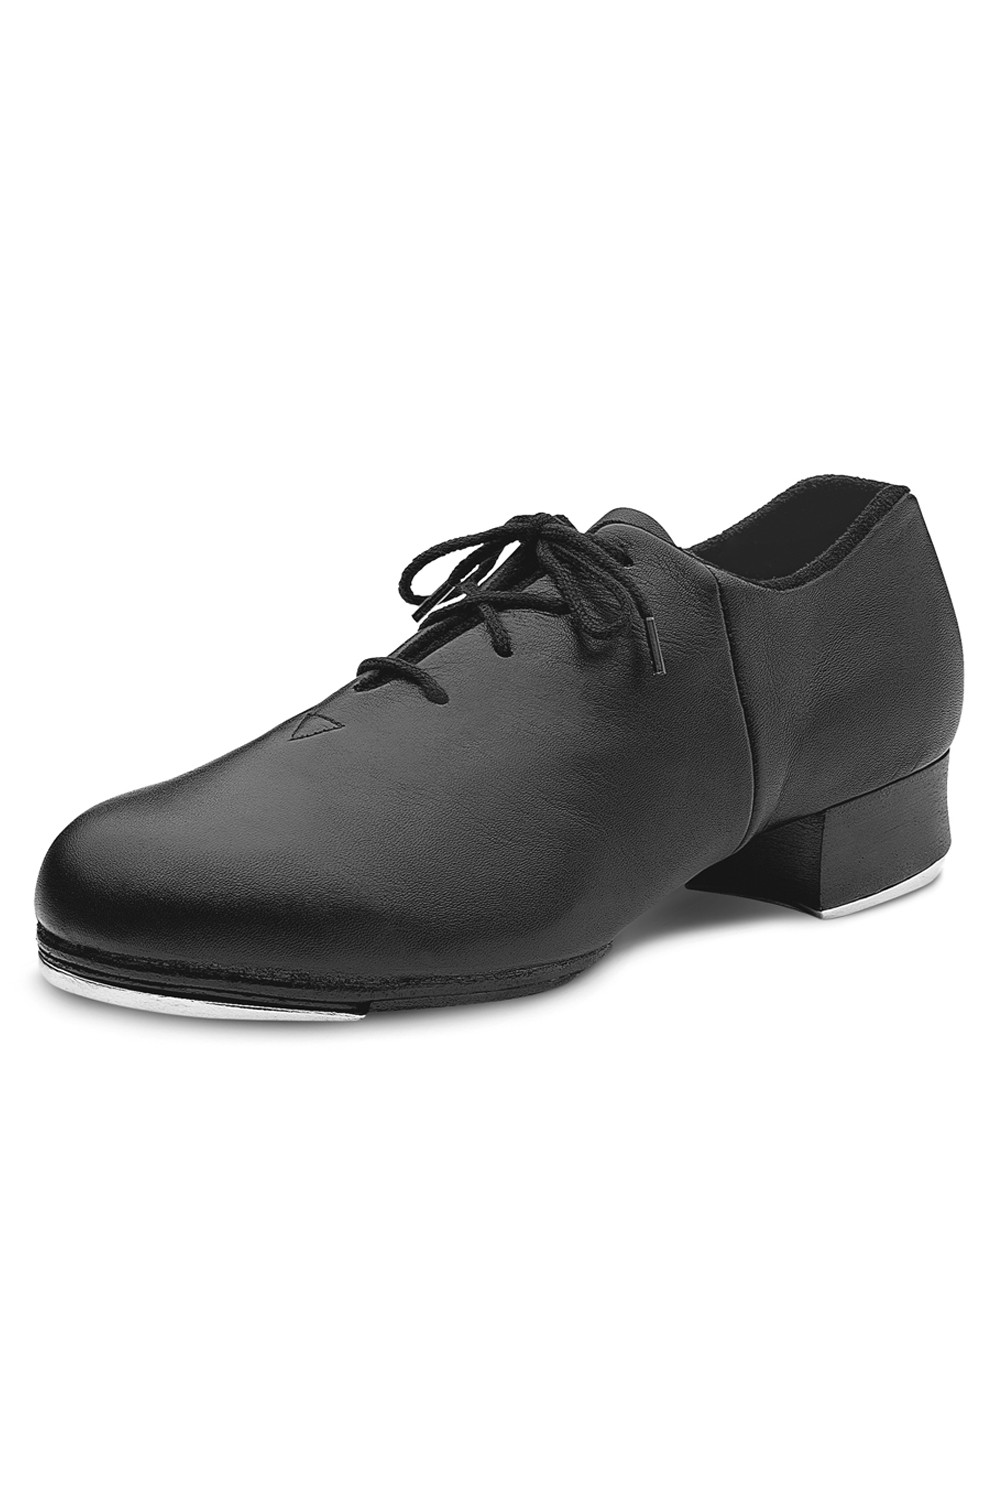 Tap-flex - Mens Men's Tap Shoes